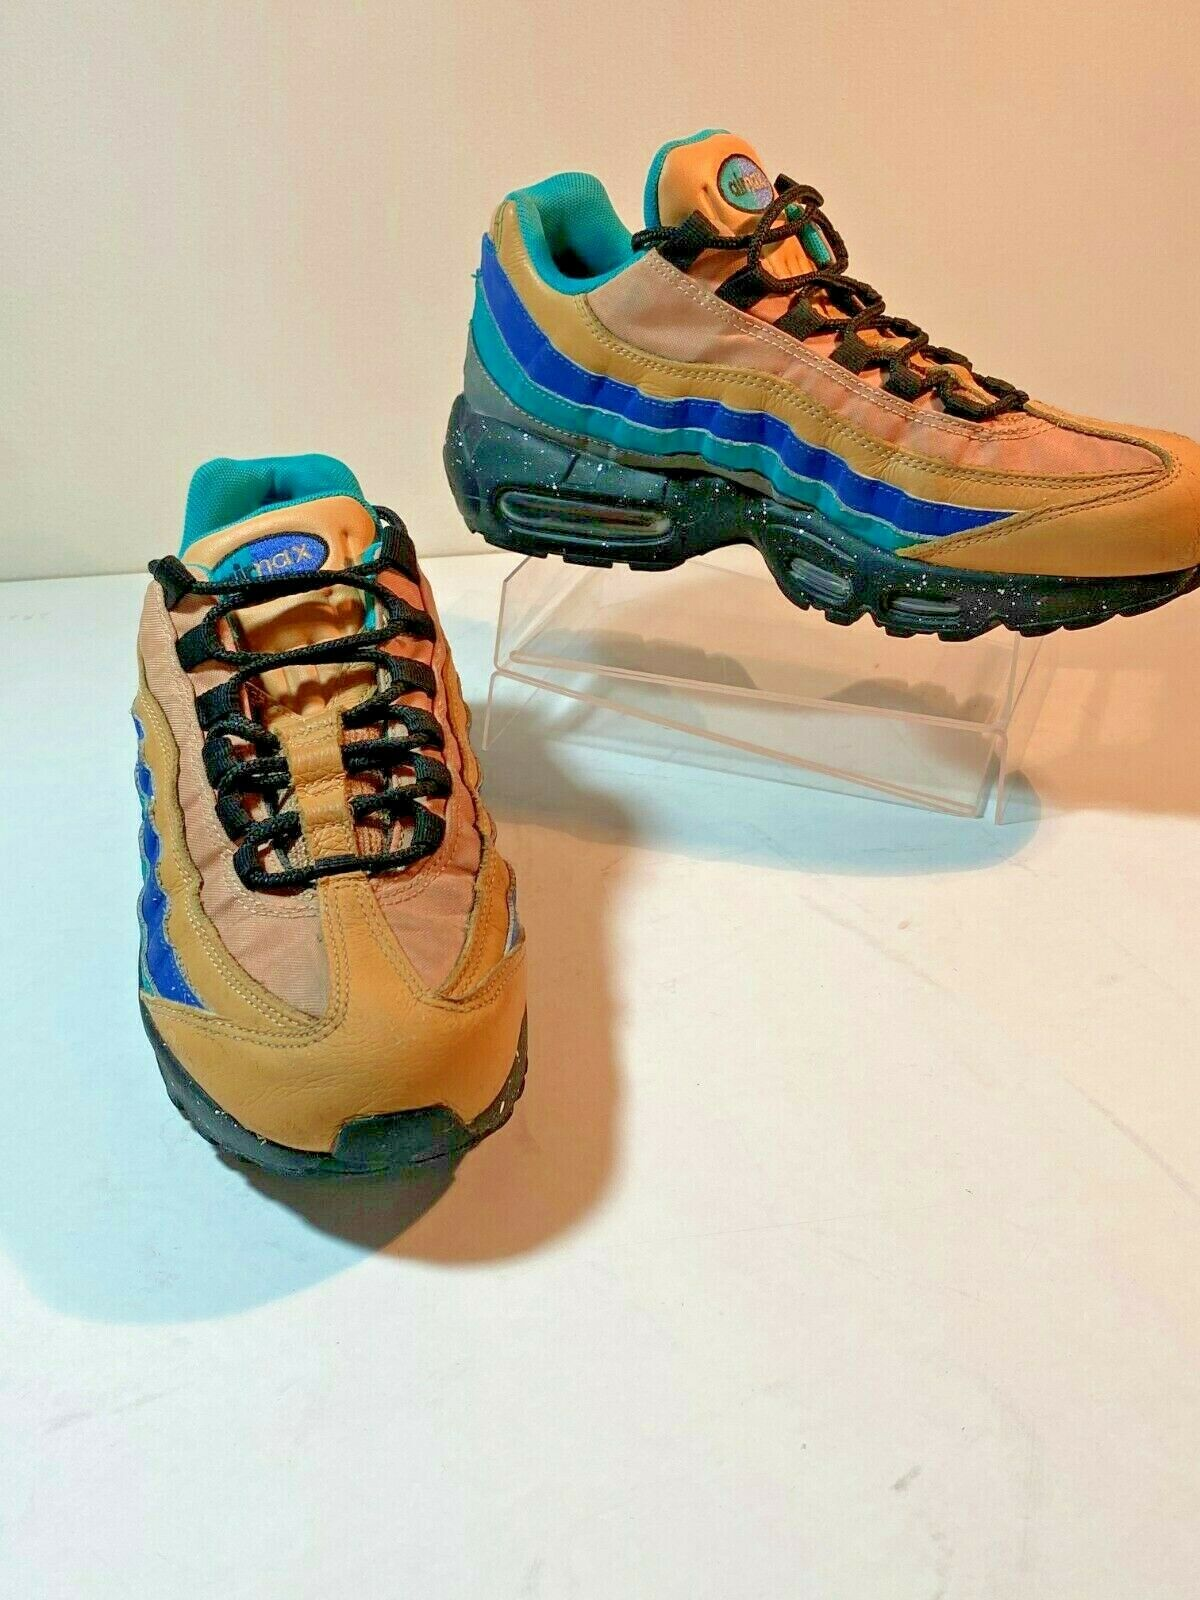 Nike Air Max 95 Men S Shoes Size 8 Praline Turbo Green Grey Mega